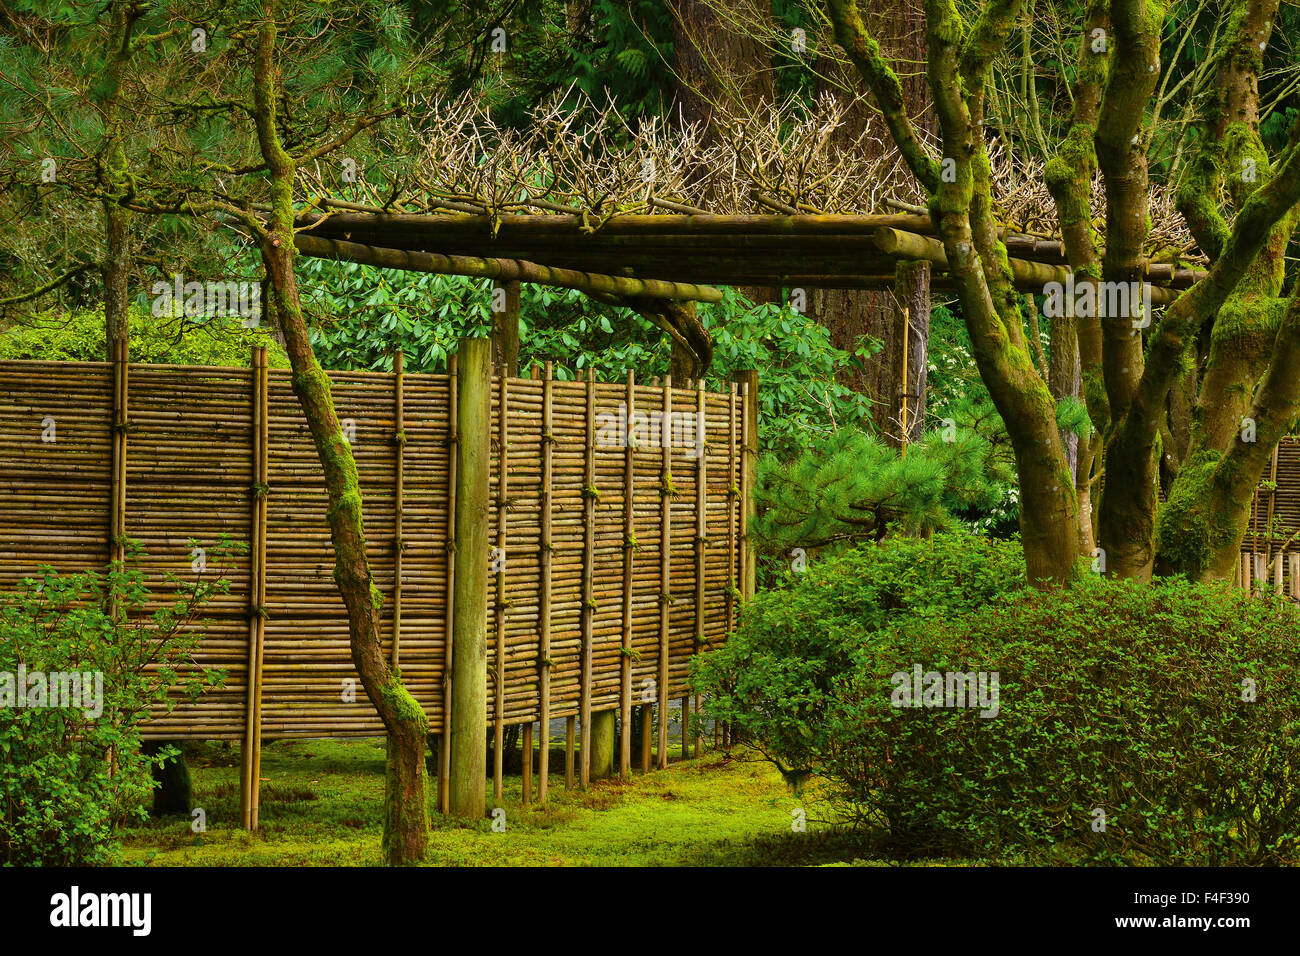 Bamboo Fence, Early Spring, Portland Japanese Garden, Portland, Oregon, USA  (PR)